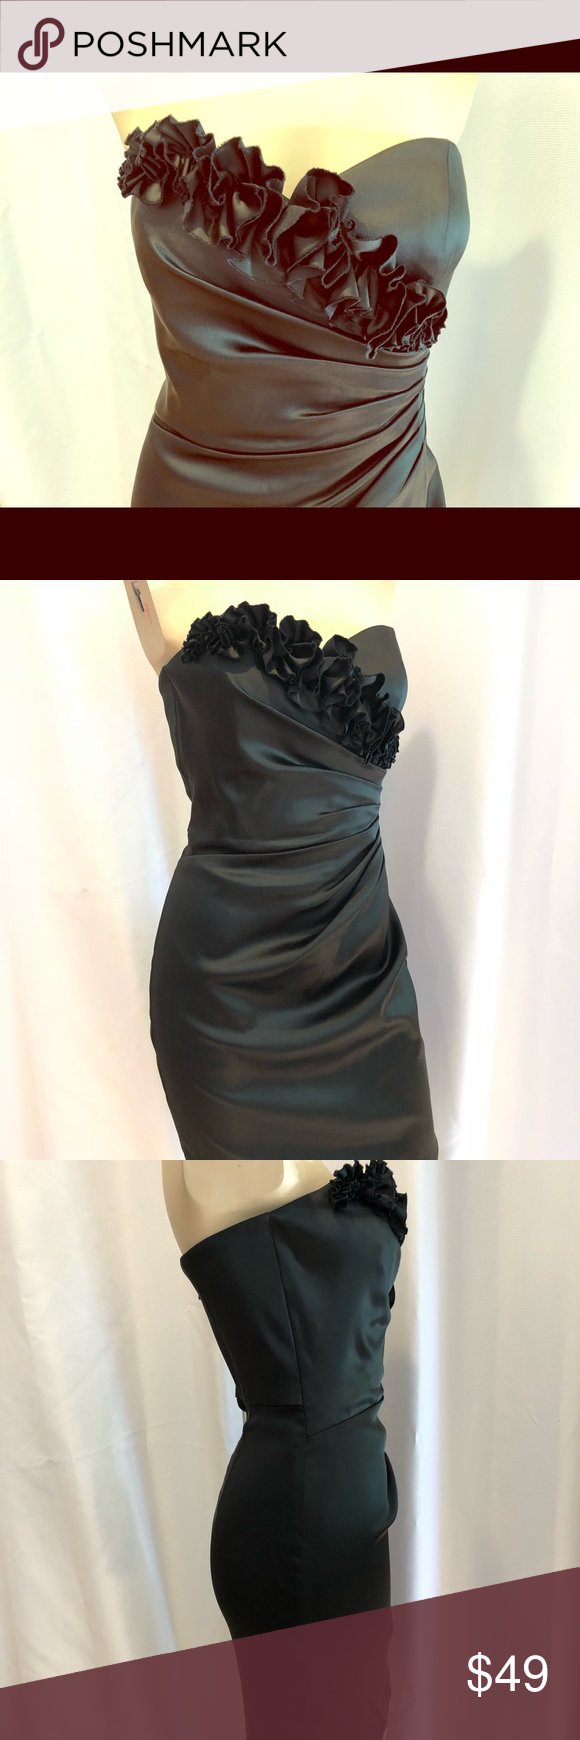 dd5329a05f3af WHBM Black Strapless Dress Size 4 Knee Length LBD This White House Black  Market Dress is in excellent condition.. worn once!!! It looks new :) White  House ...